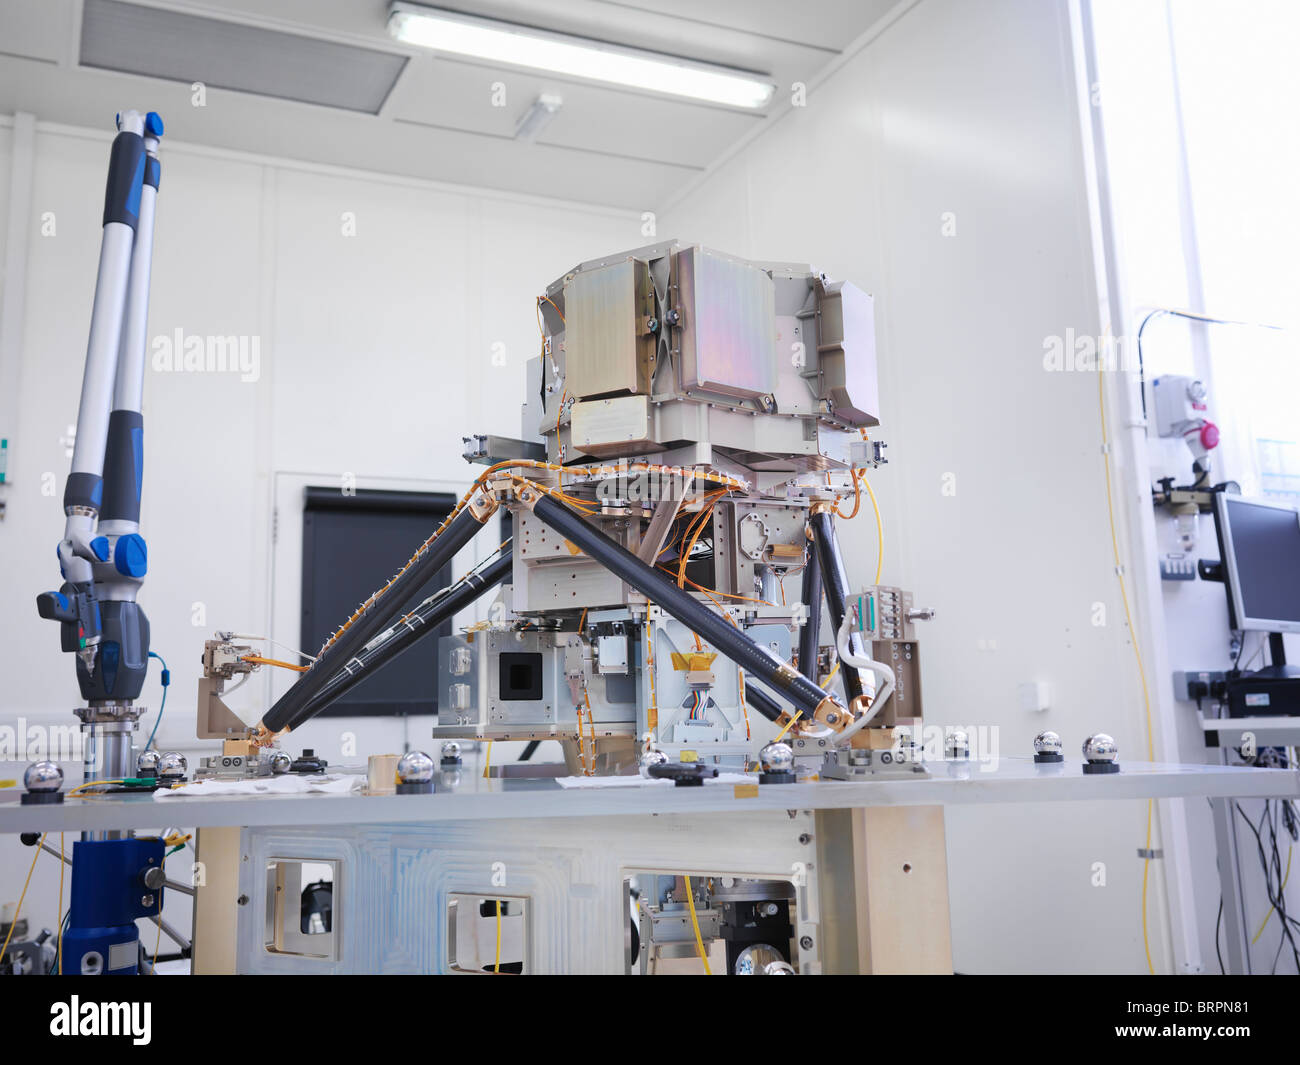 Part of satellite during assembly - Stock Image